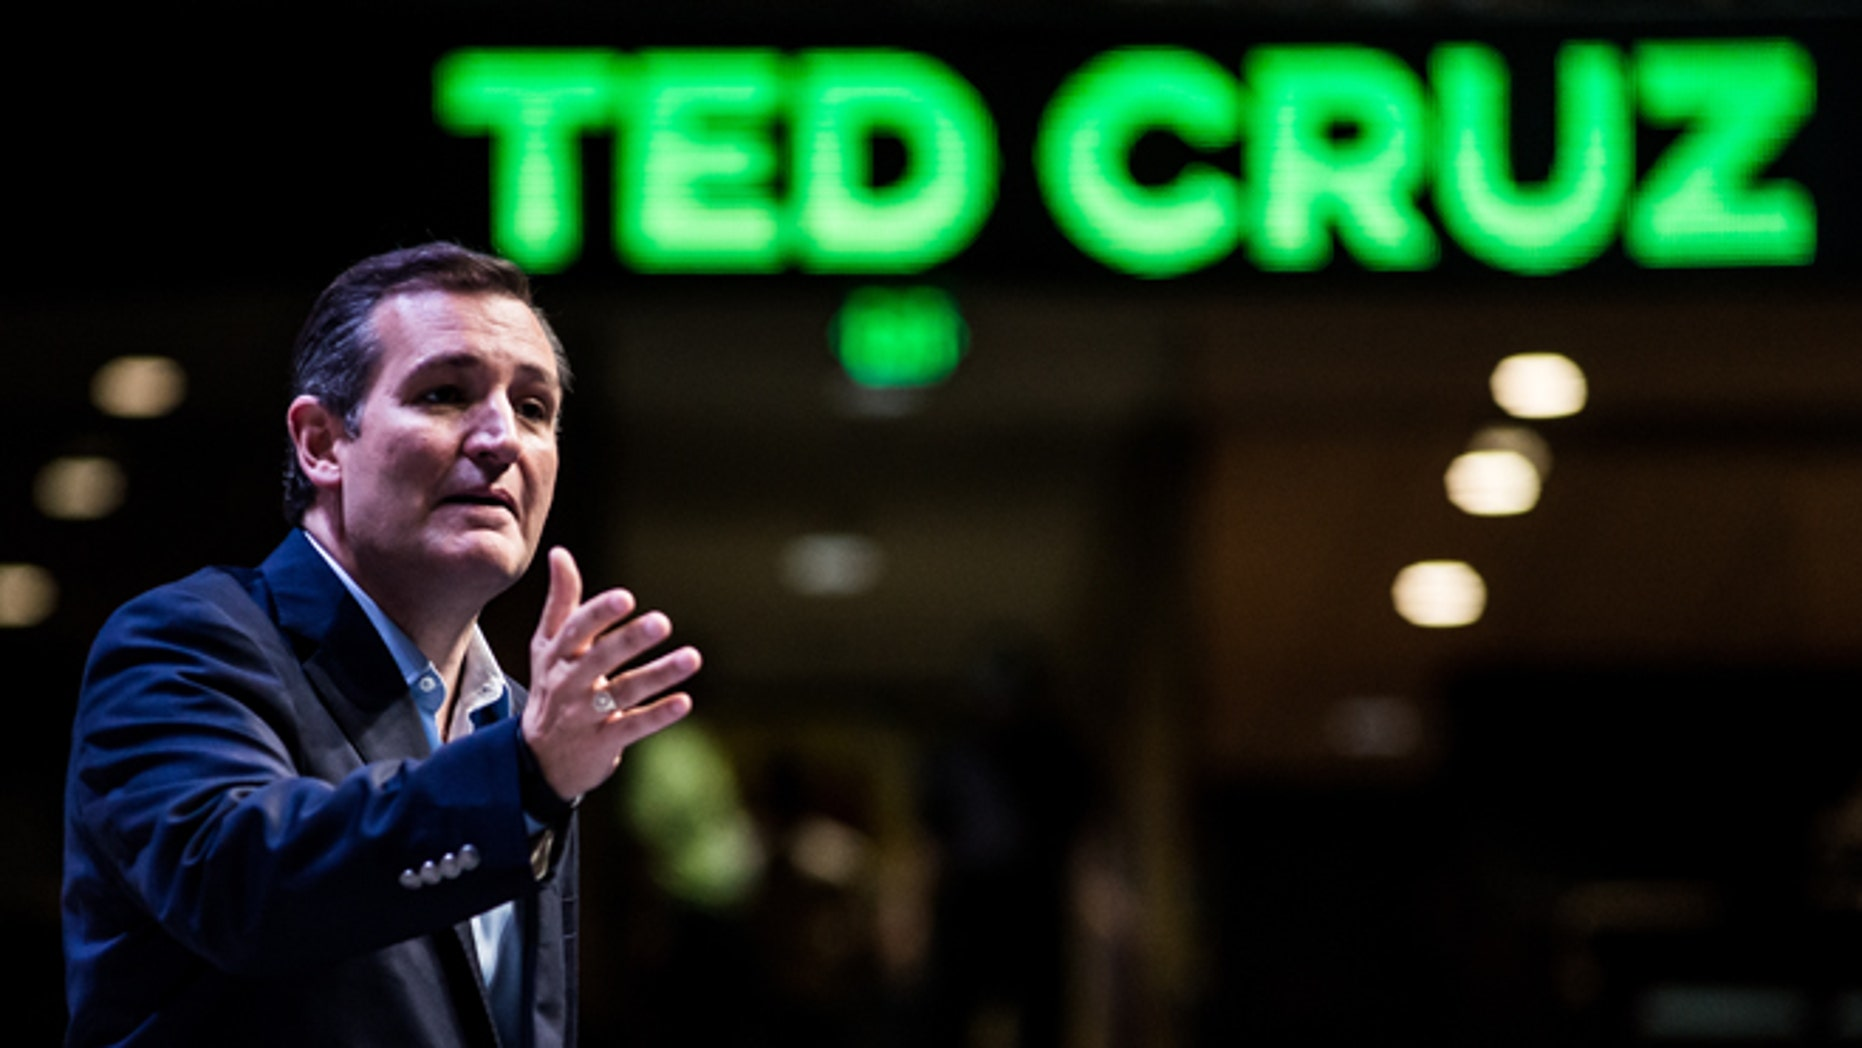 Sen. Ted Cruz speaks at the Heritage Action Presidential Candidate Forum September 18, 2015 in Greenville, South Carolina.